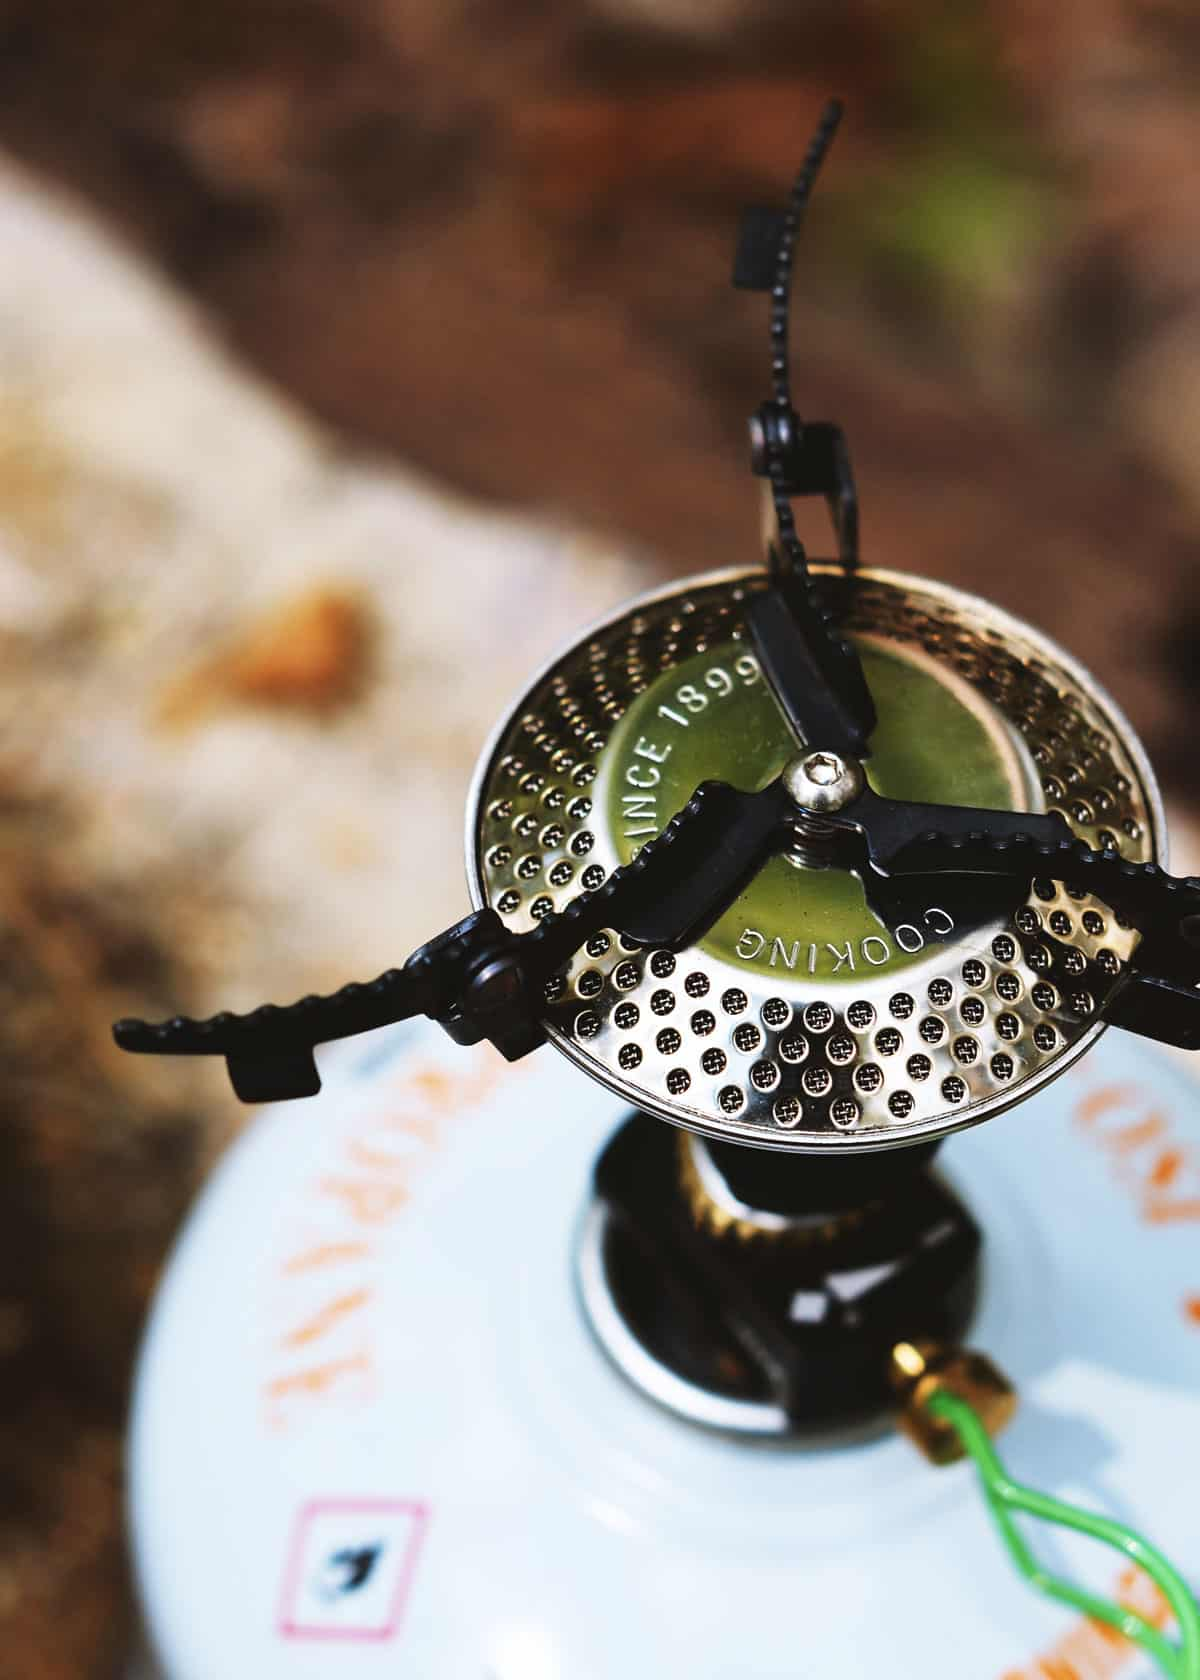 Ultralight camping stoves compared